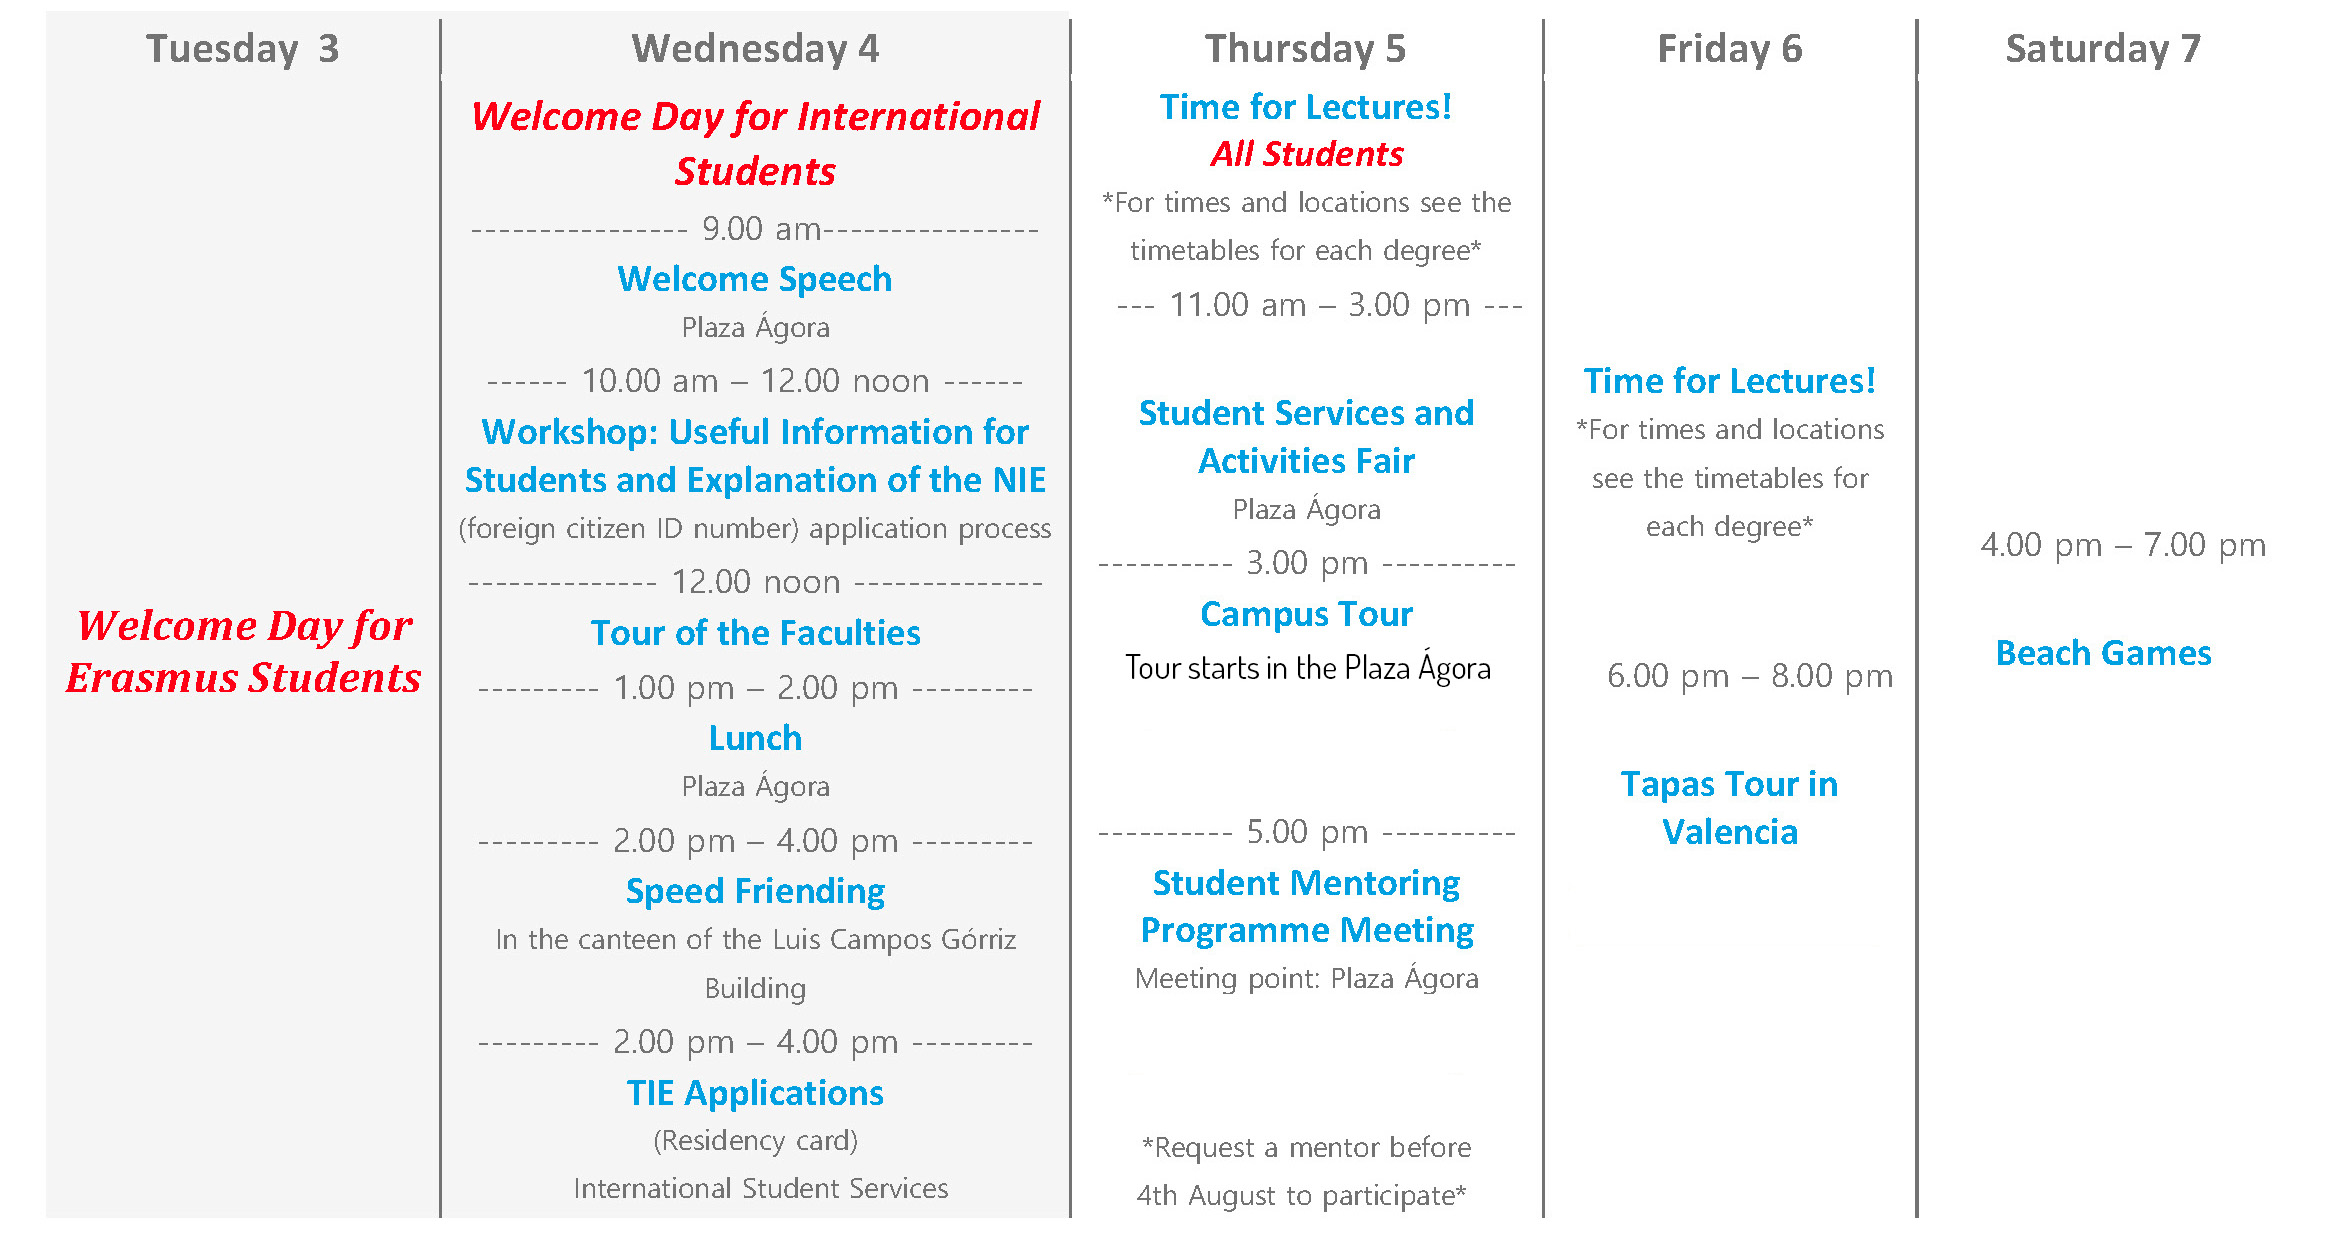 Calendario Valencia 2019.Start Of Lectures For New Students Welcome To The Valencia Campus